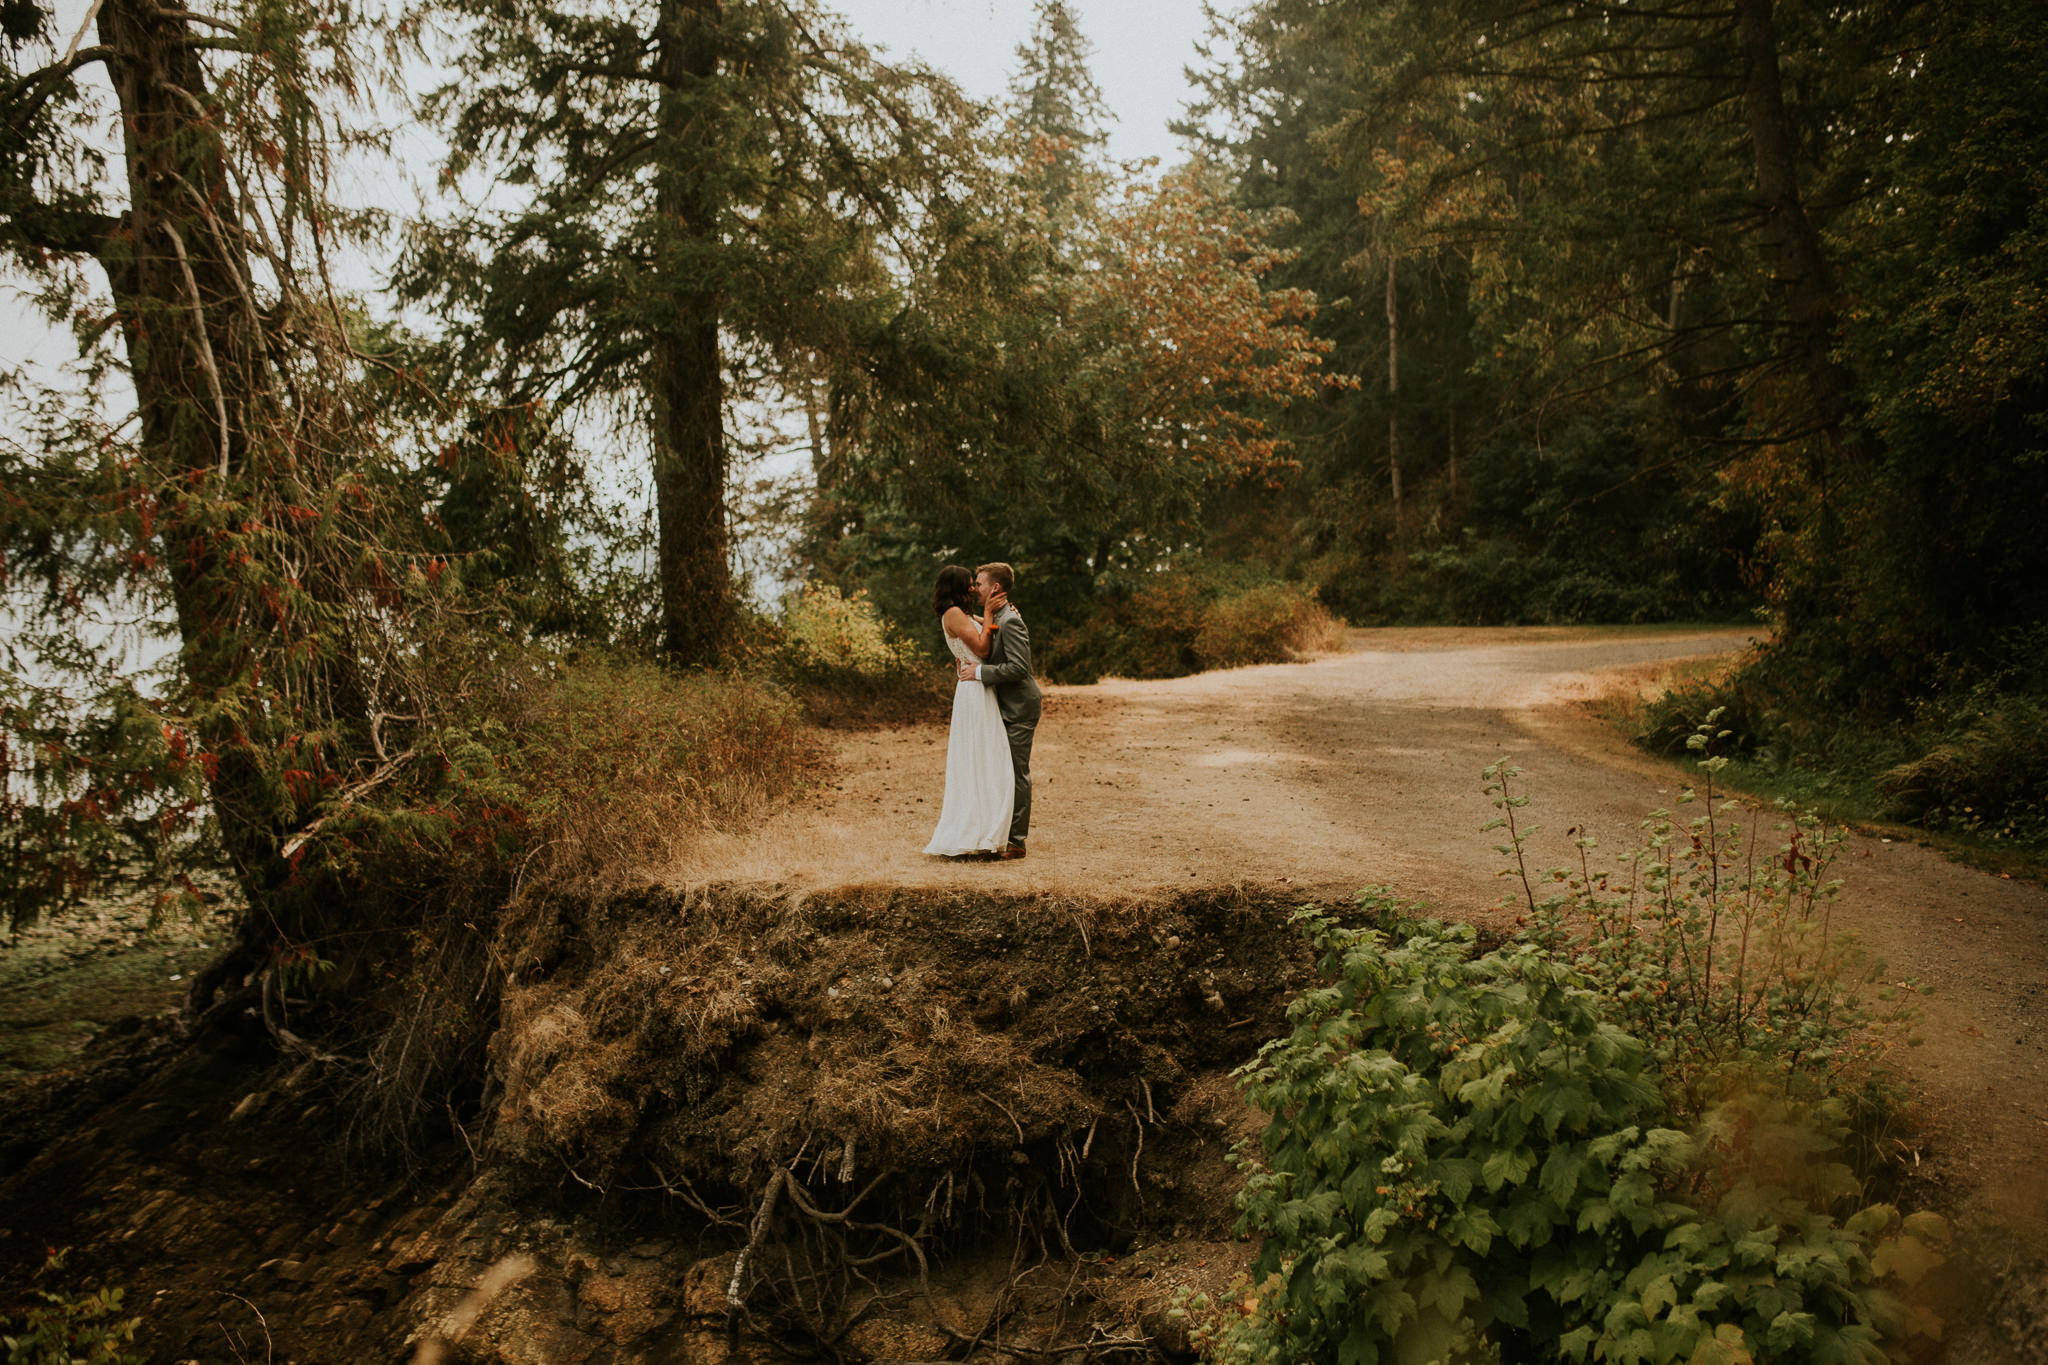 Port-Orchard-Manchester-Park-elopement-Bride-And-Groom-122.jpg